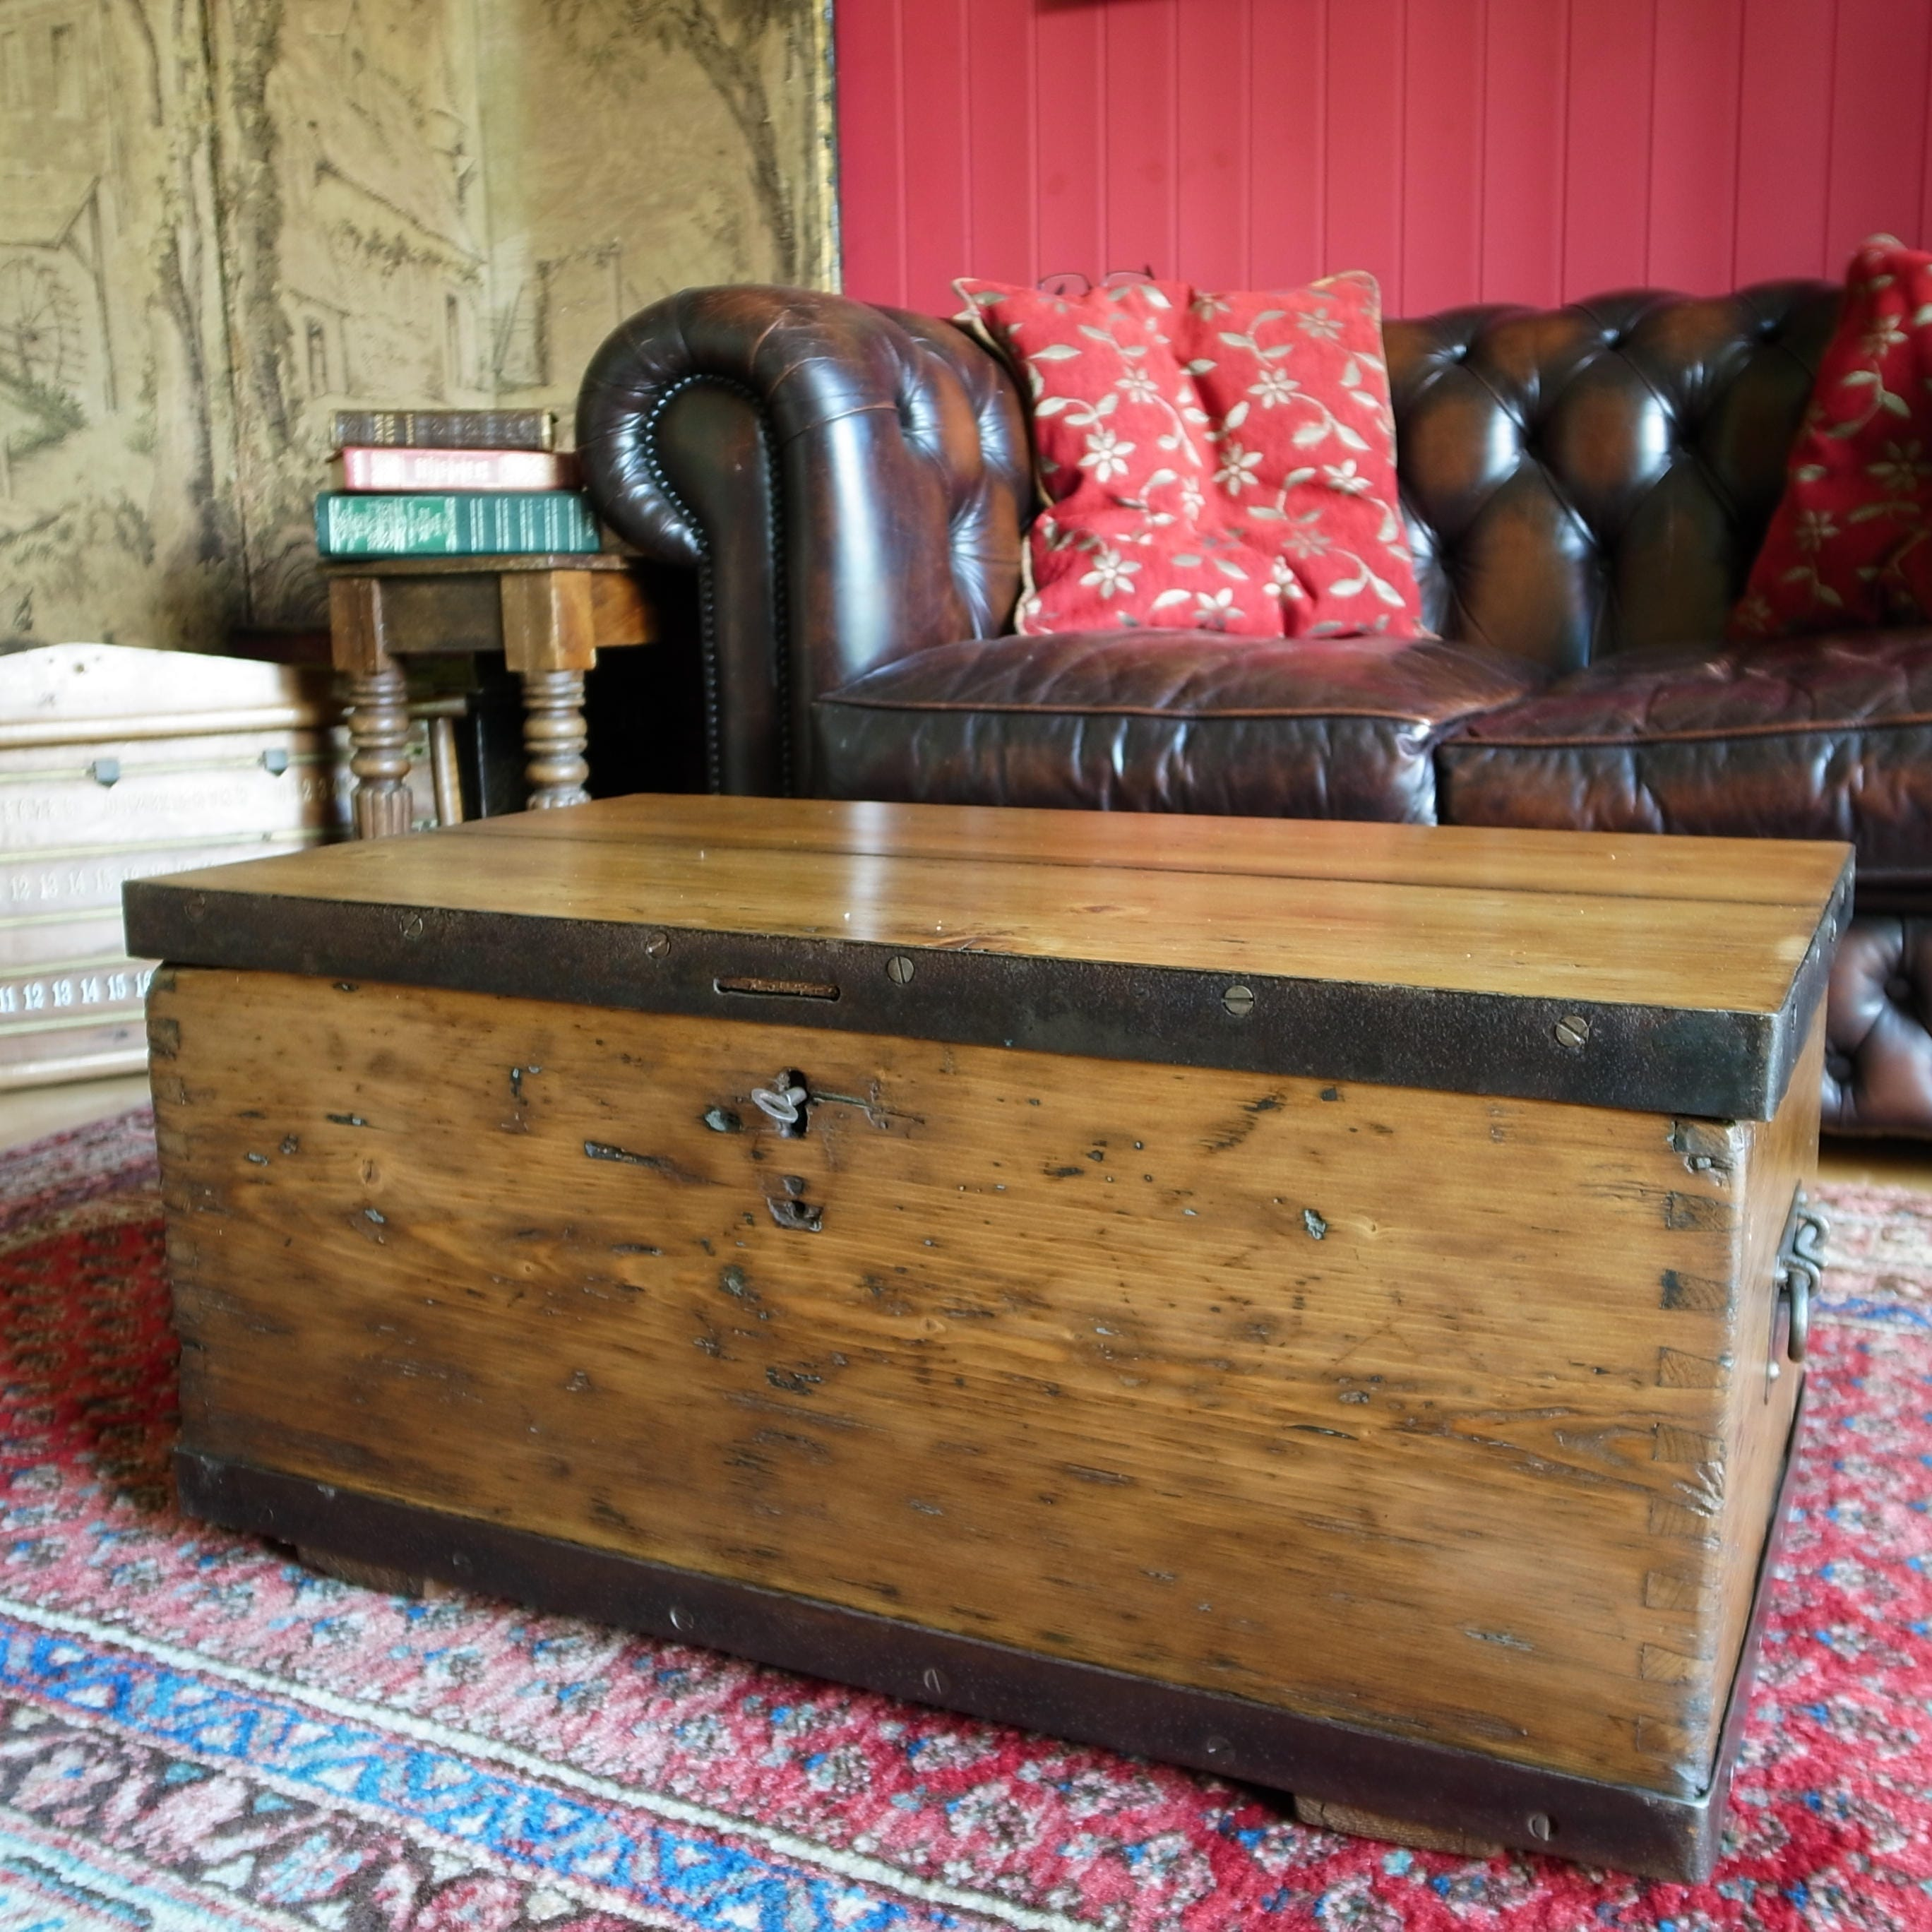 RUSTIC INDUSTRIAL CHEST Storage Trunk Coffee Table Reclaimed Wooden Furniture Vintage 1940s Military Chest Tv Stand